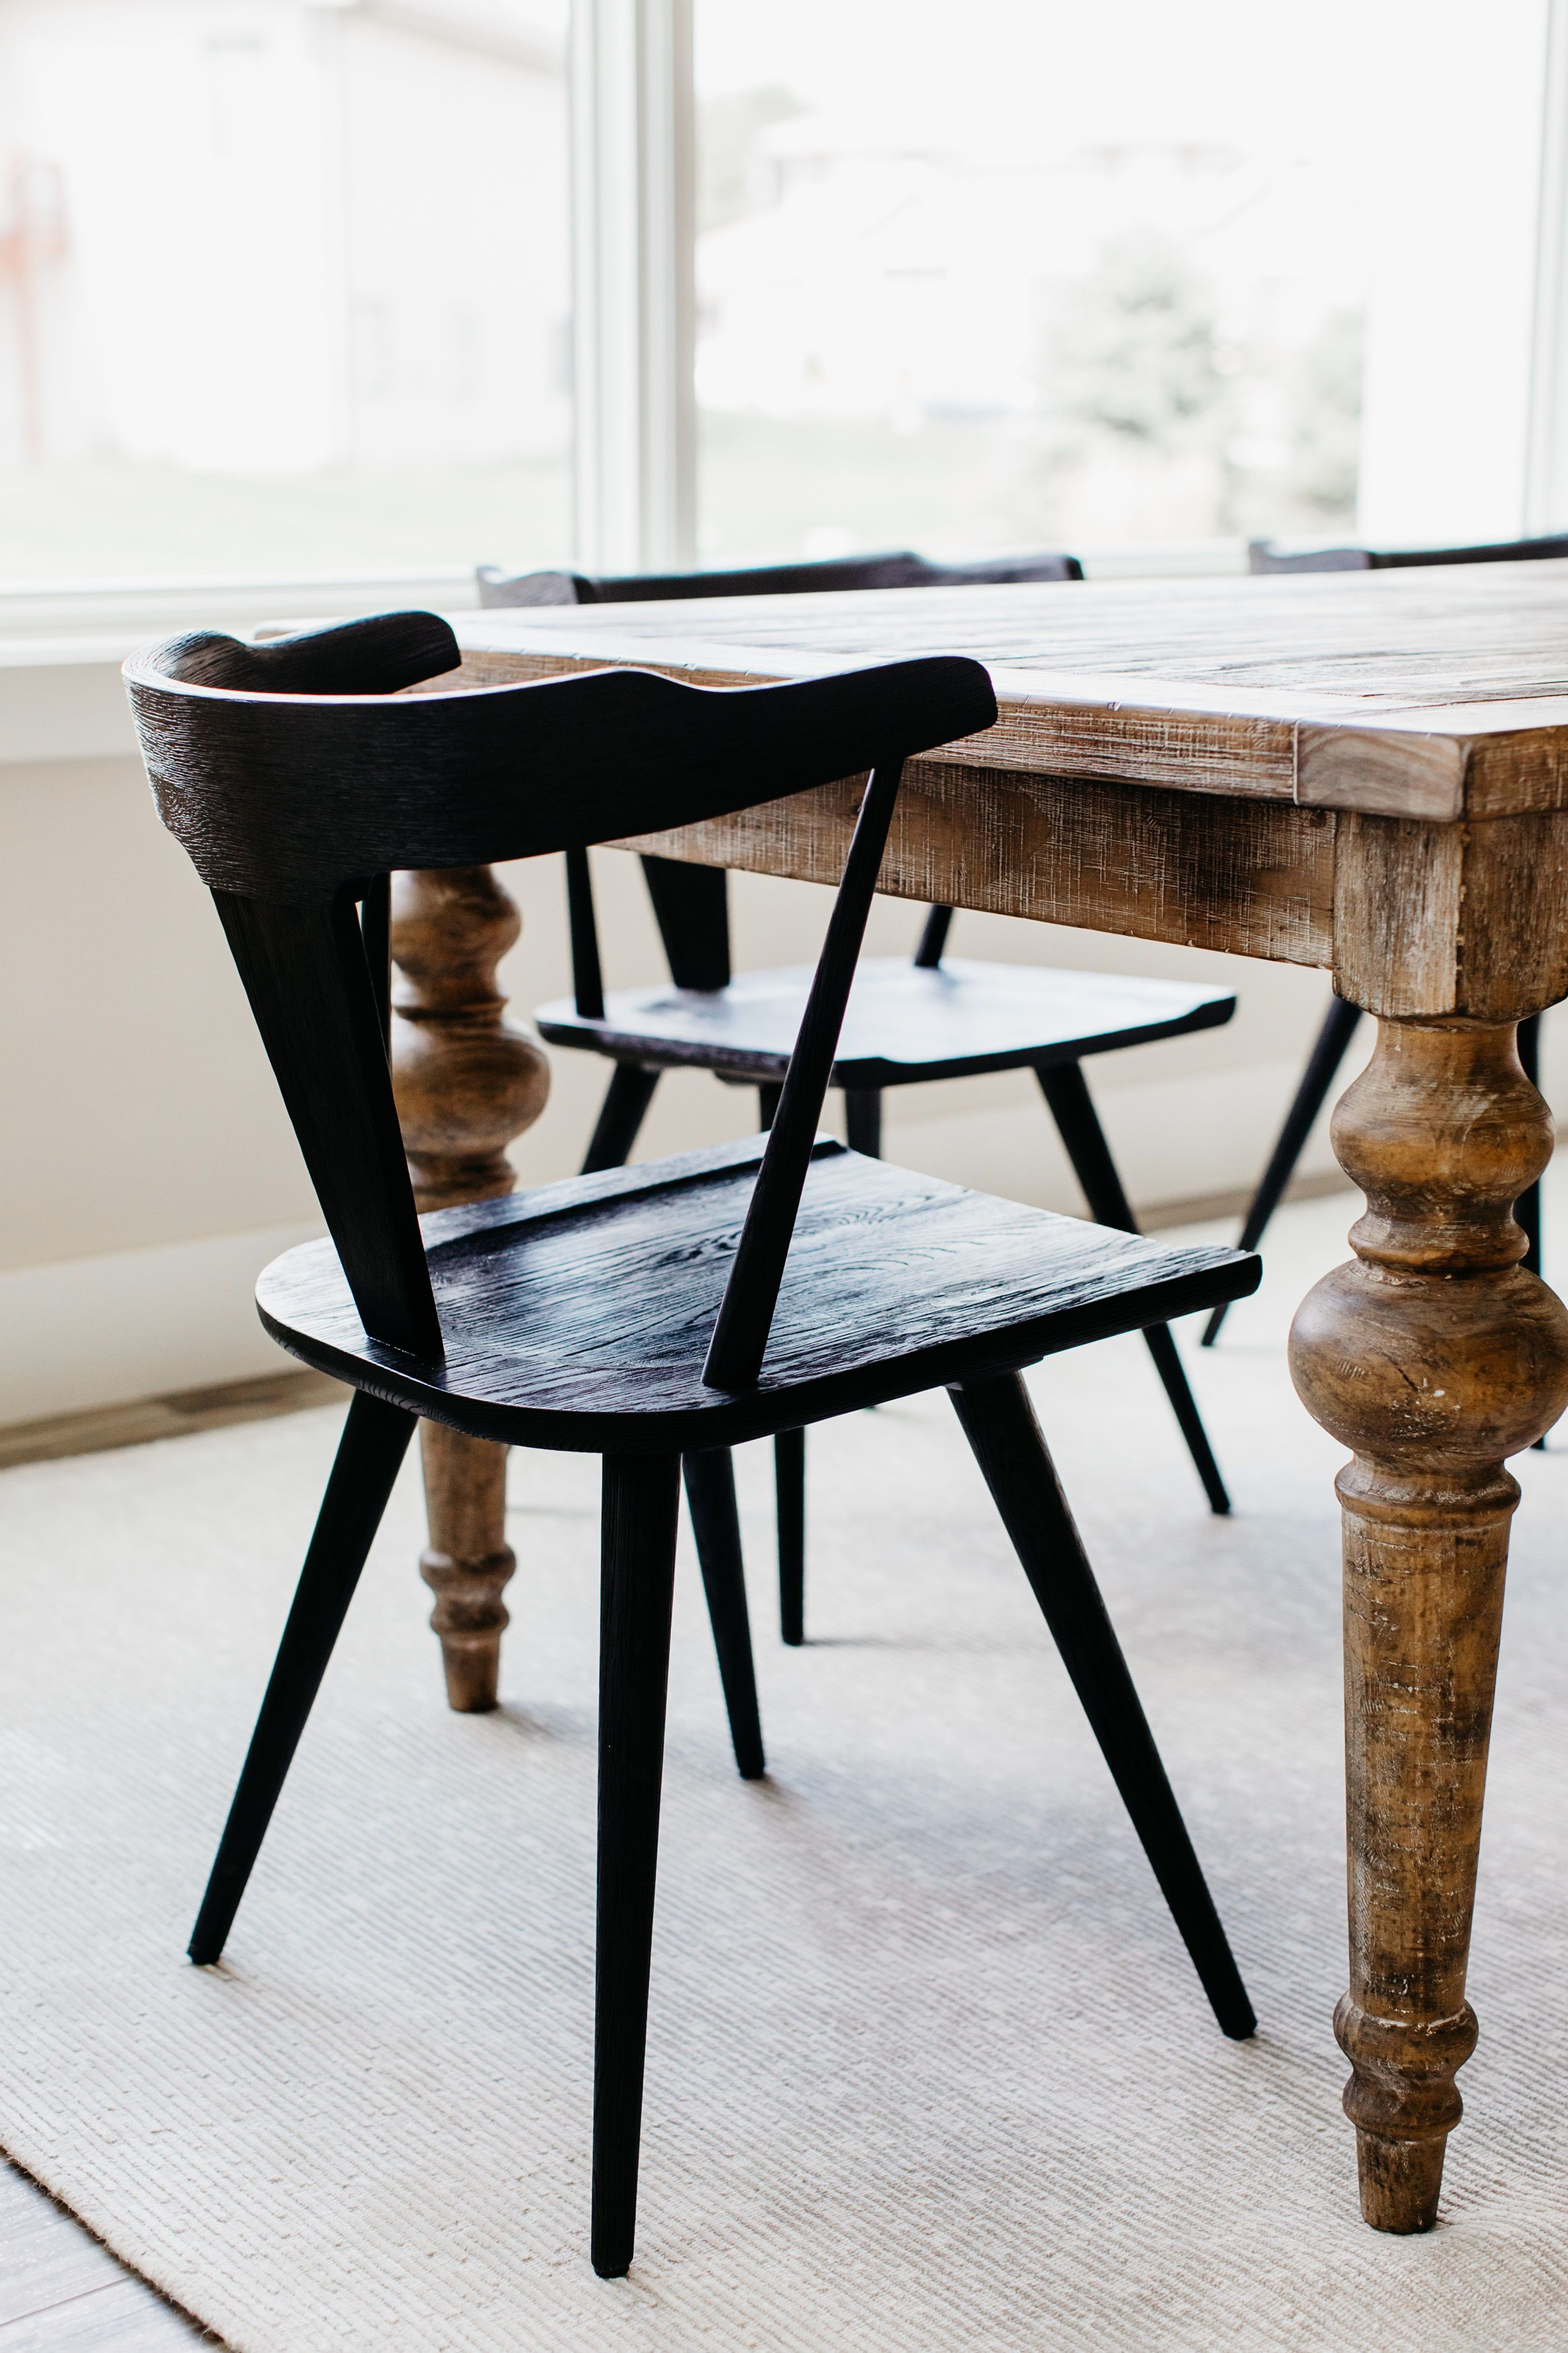 Black wishbone chairs with wooden dining table. Contrast